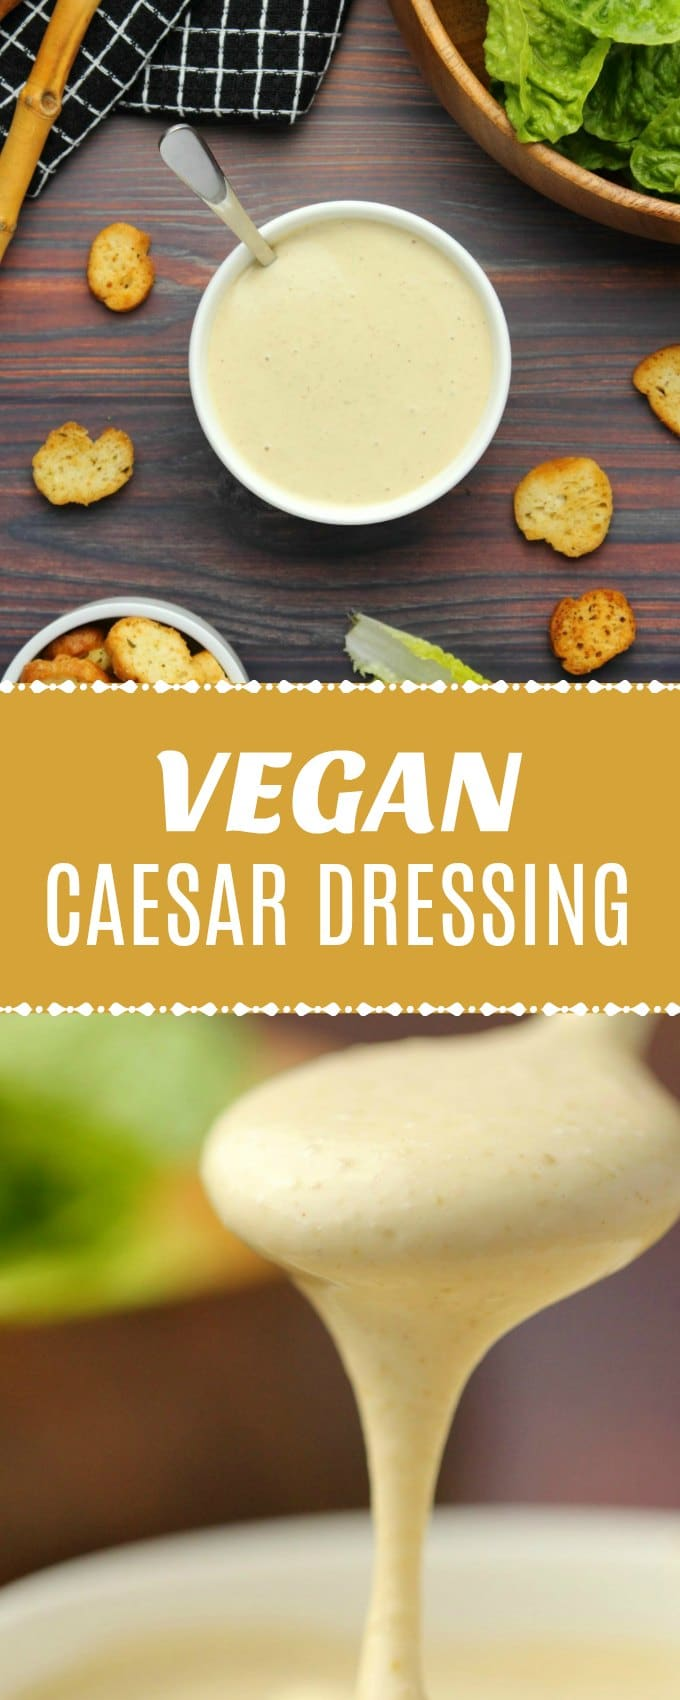 Creamy vegan caesar dressing that is ready in 5 minutes! Super simple, cheesy, garlicky and perfect as a dressing or dip. Gluten-Free | lovingitvegan.com